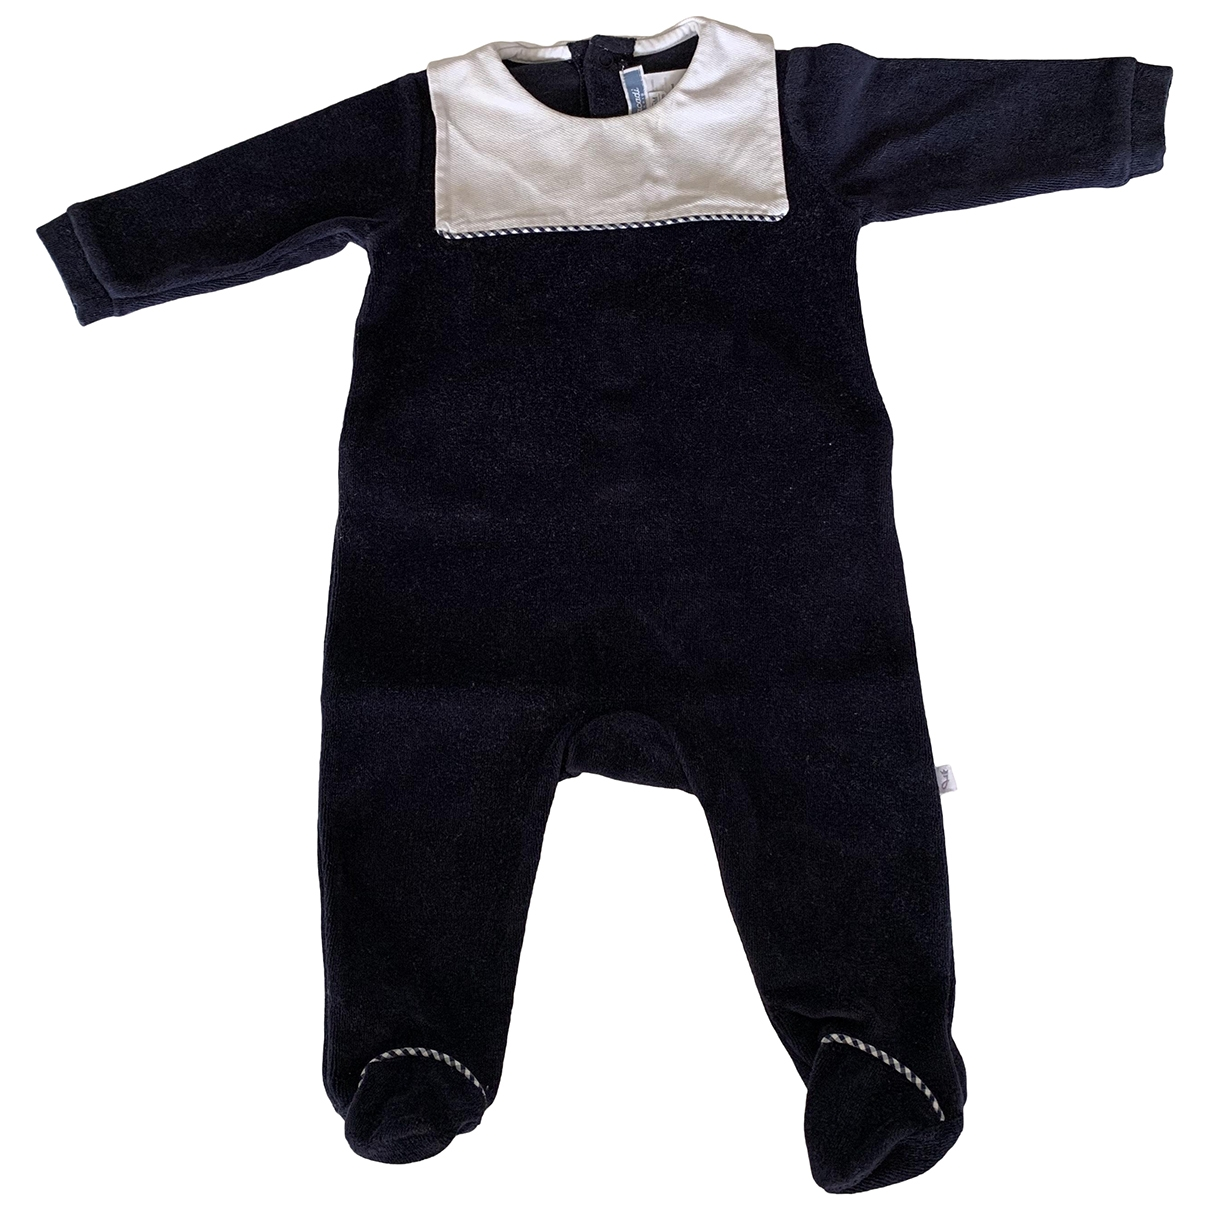 Jacadi \N Blue Cotton Outfits for Kids 6 months - up to 67cm FR